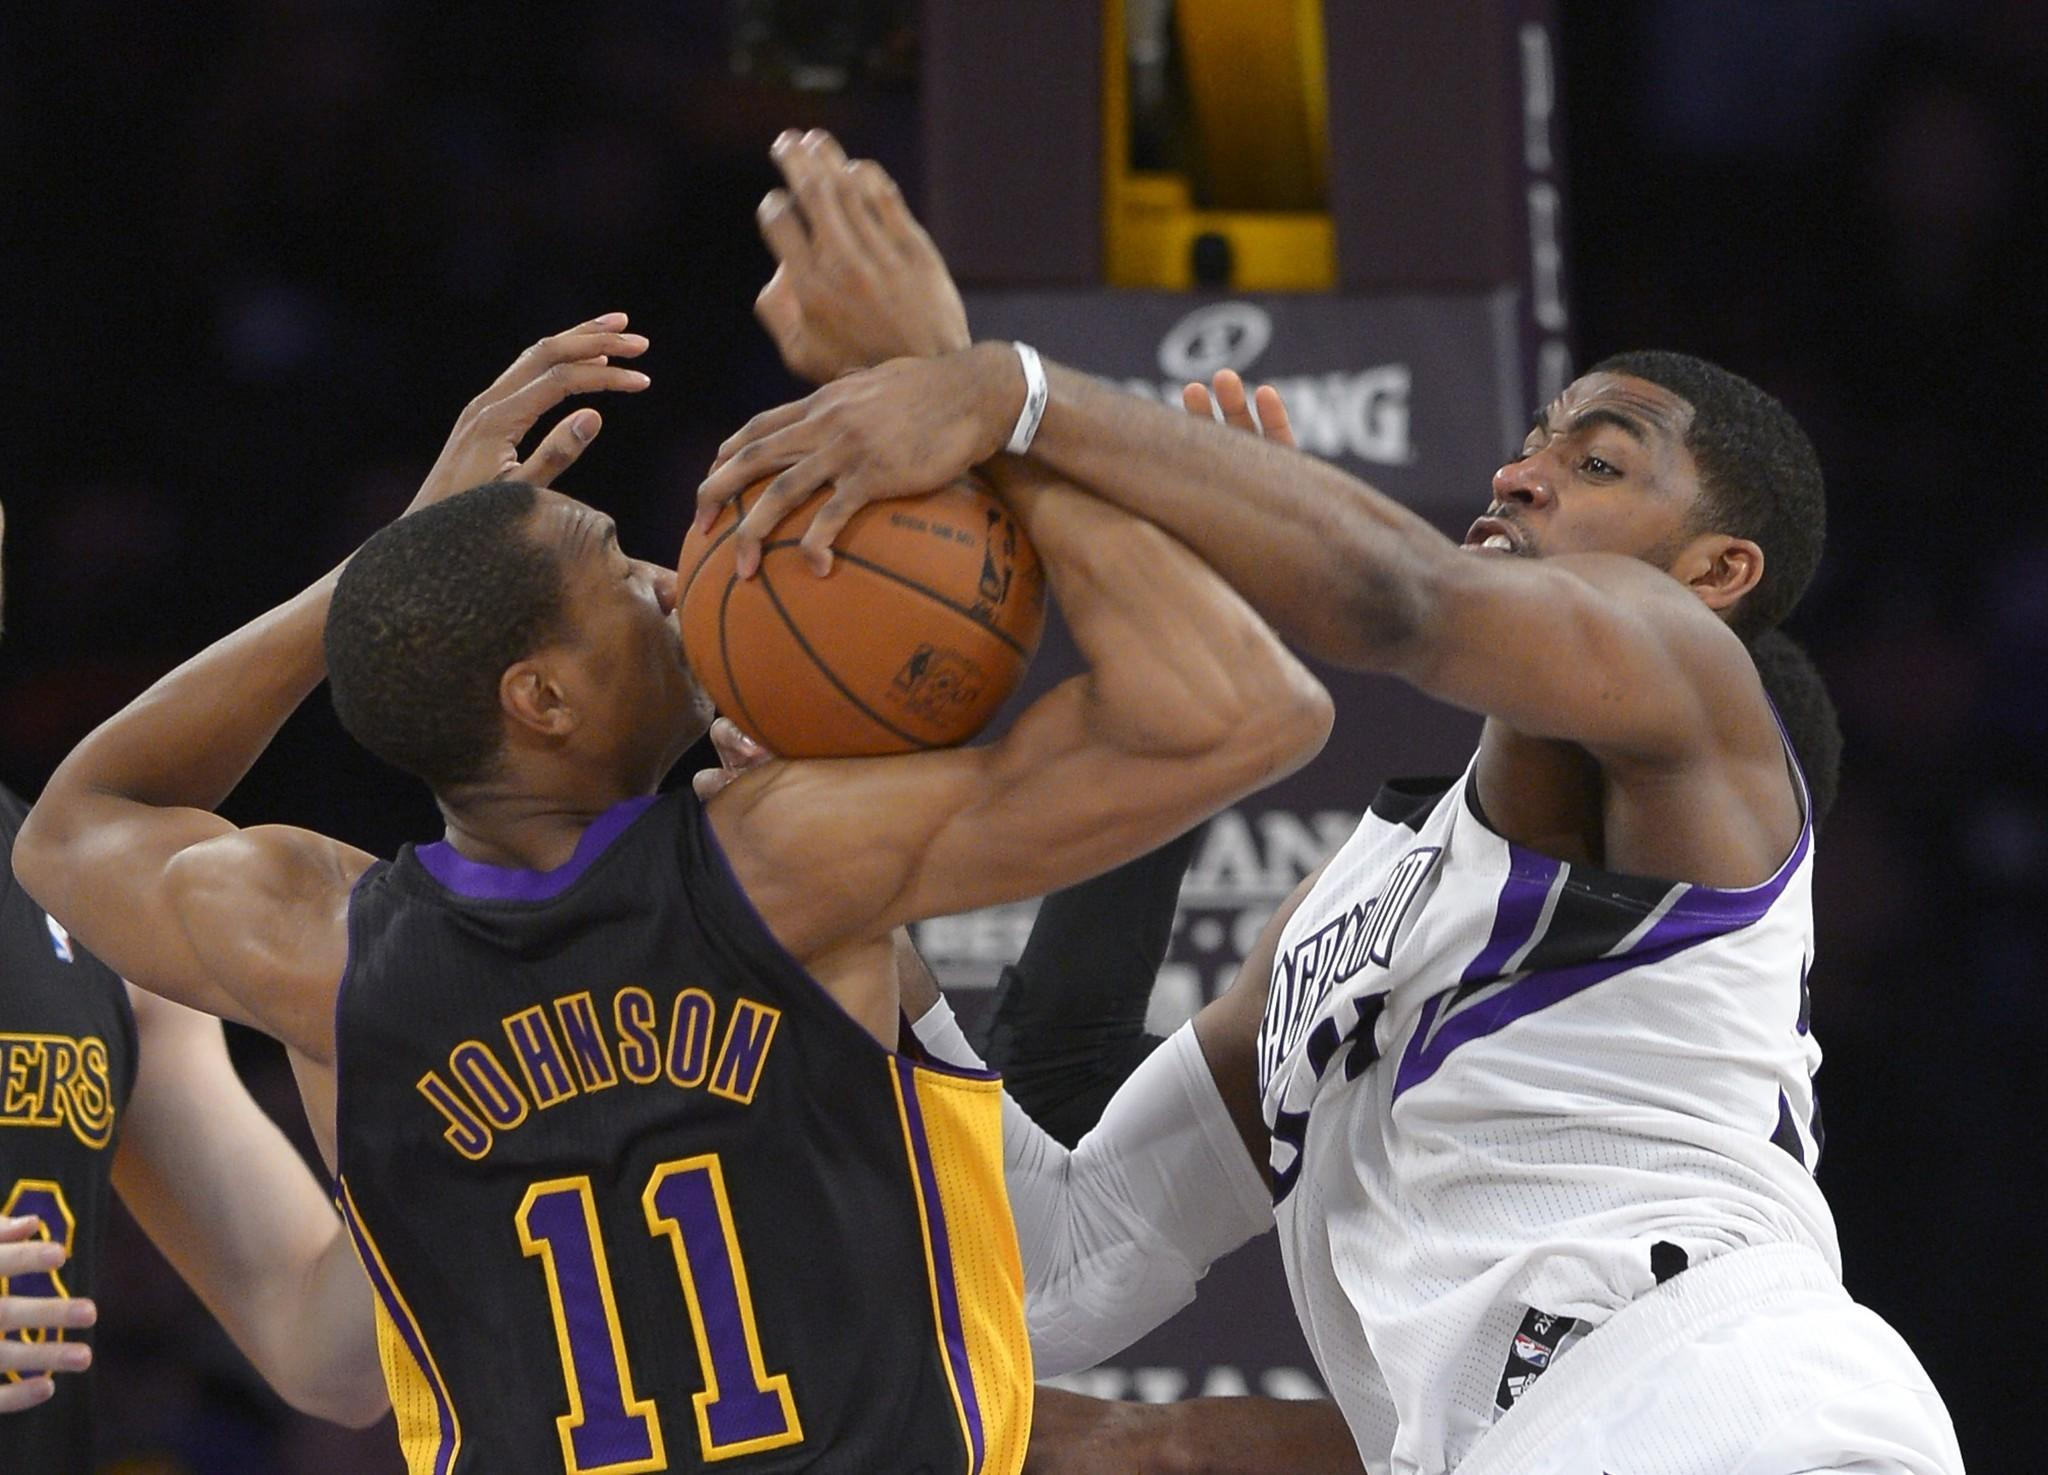 After forward Wesley Johnson and the Lakers battled Jason Thompson and the Kings to a 126-122 victory on Friday, the schedule and opponents only get tougher to finish the season.